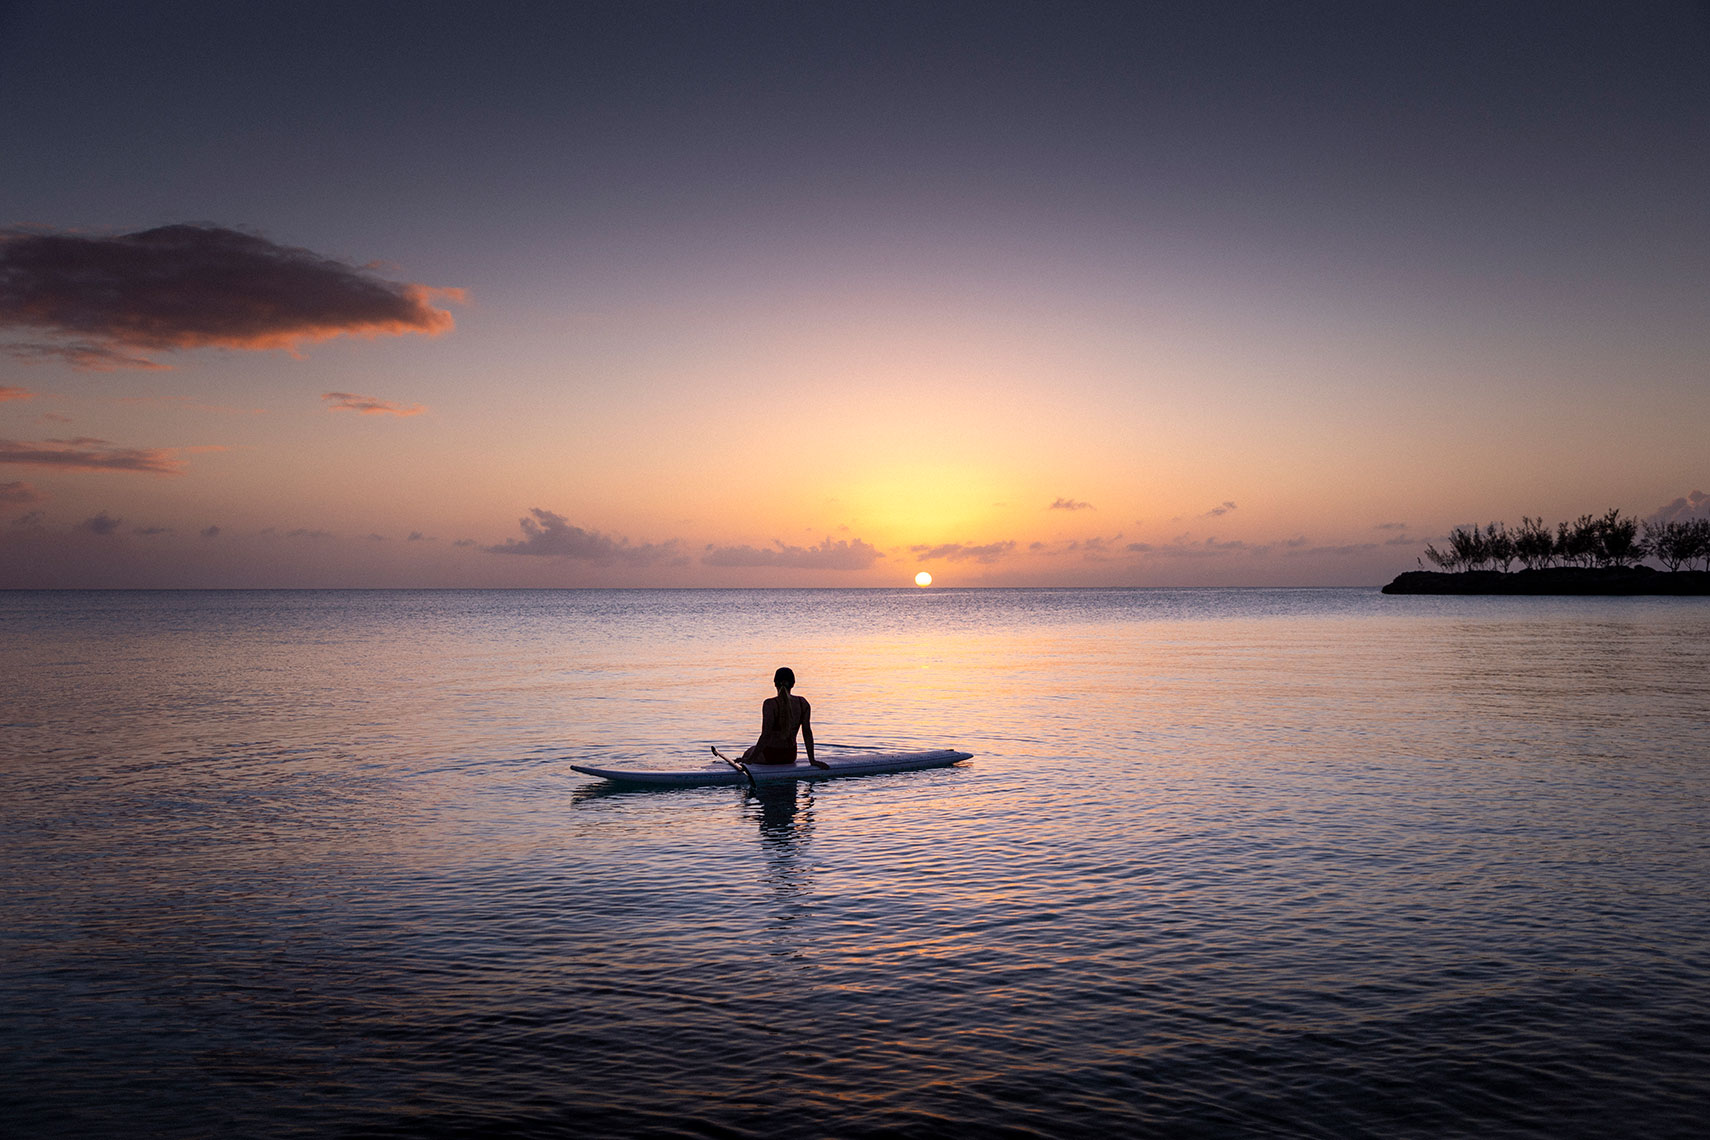 Sitting-on-paddleboard_1